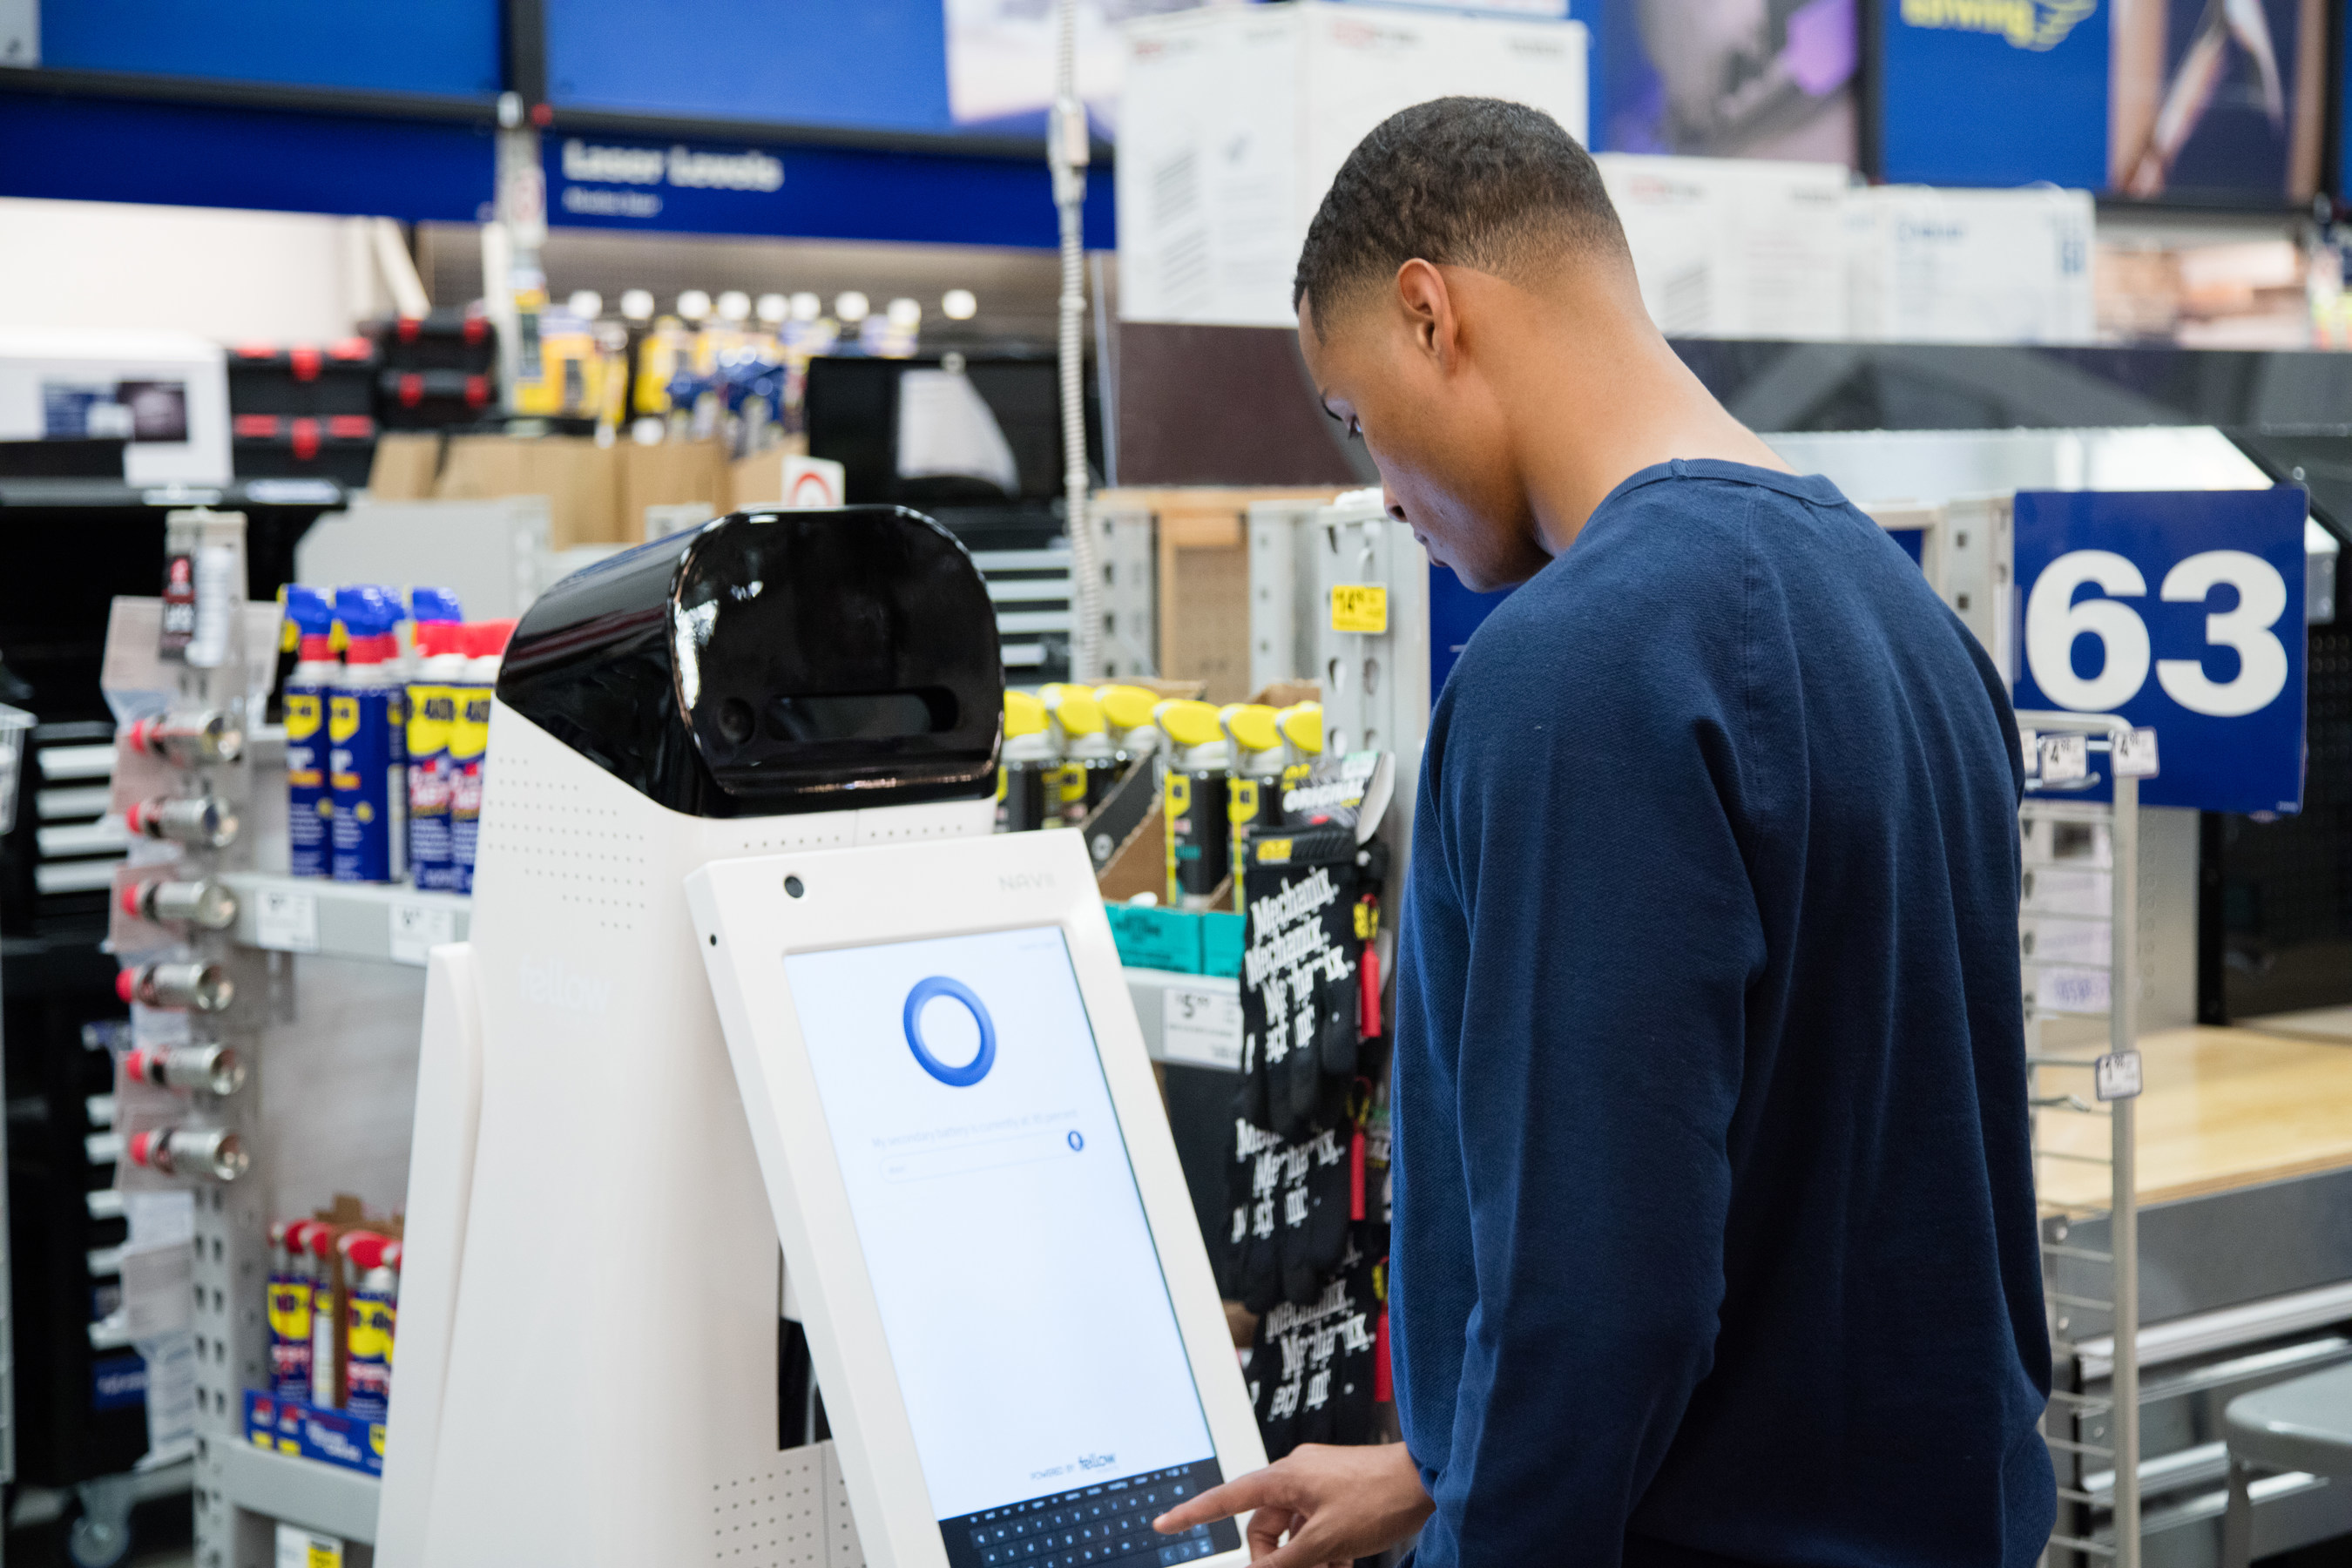 LoweBot helps a customer pull up product information.